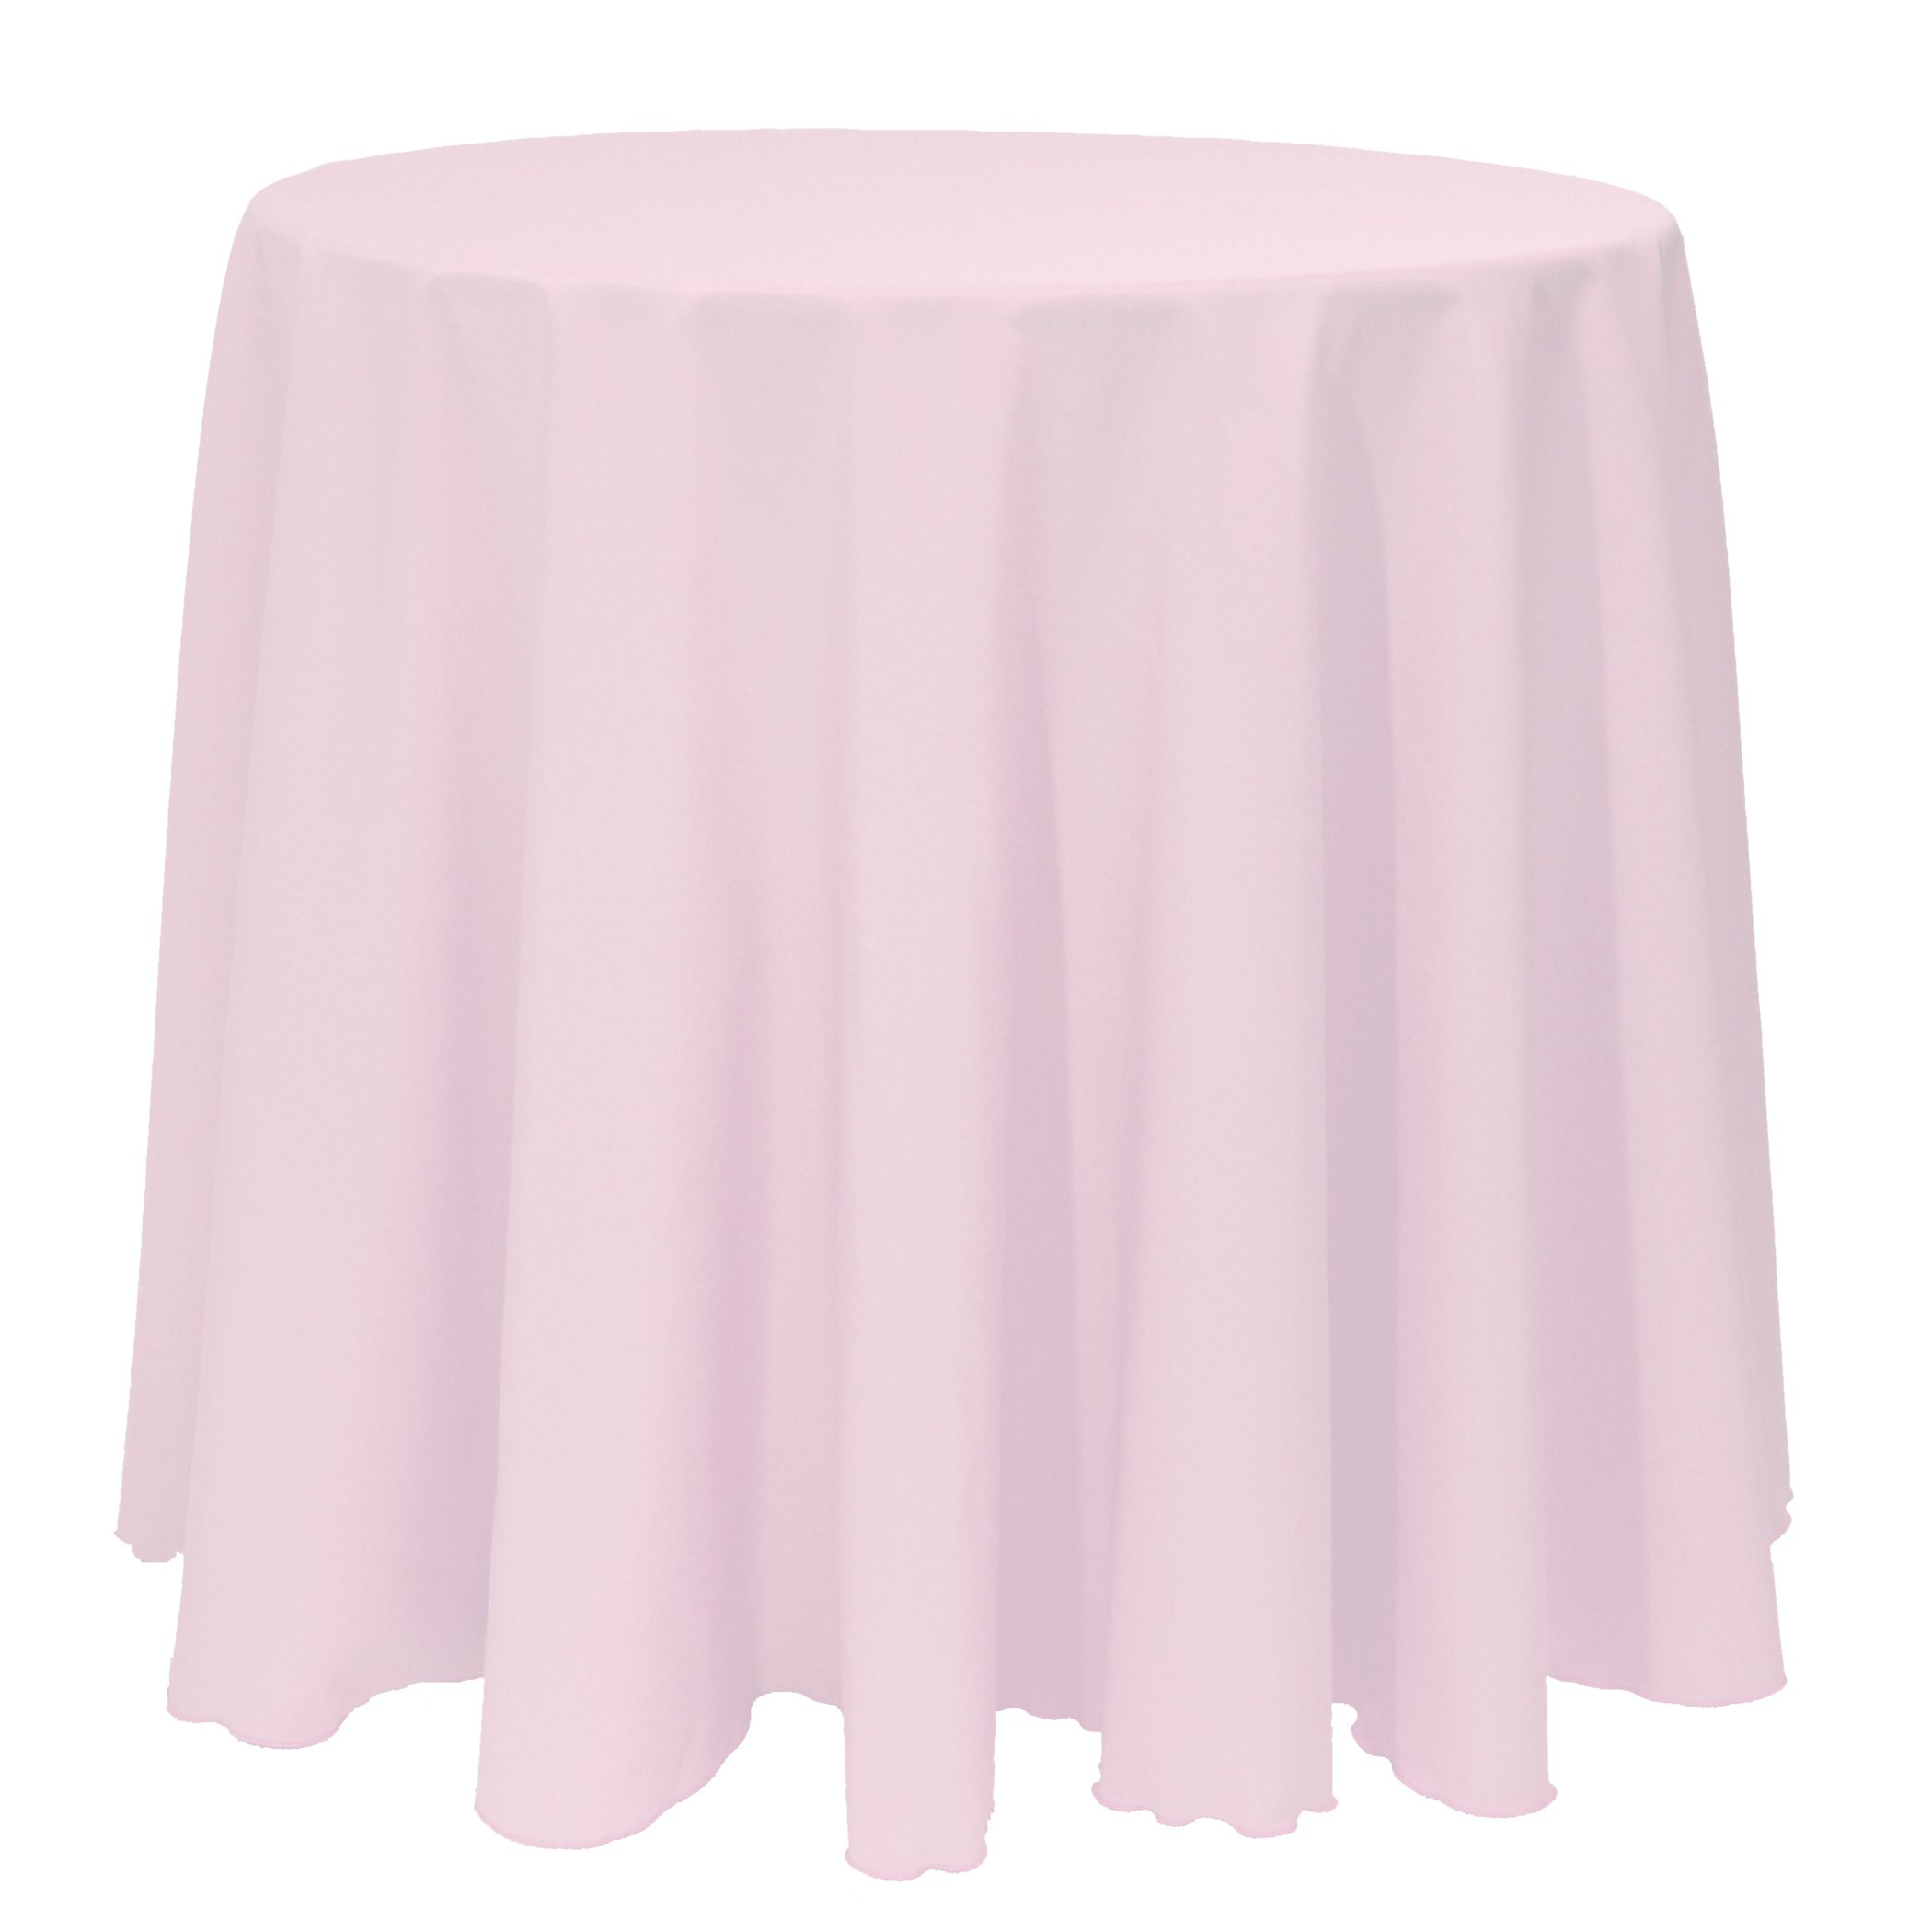 Ultimate Textile (5 Pack) 90-Inch Round Polyester Linen Tablecloth - for Wedding, Restaurant or Banquet use, Ice Pink